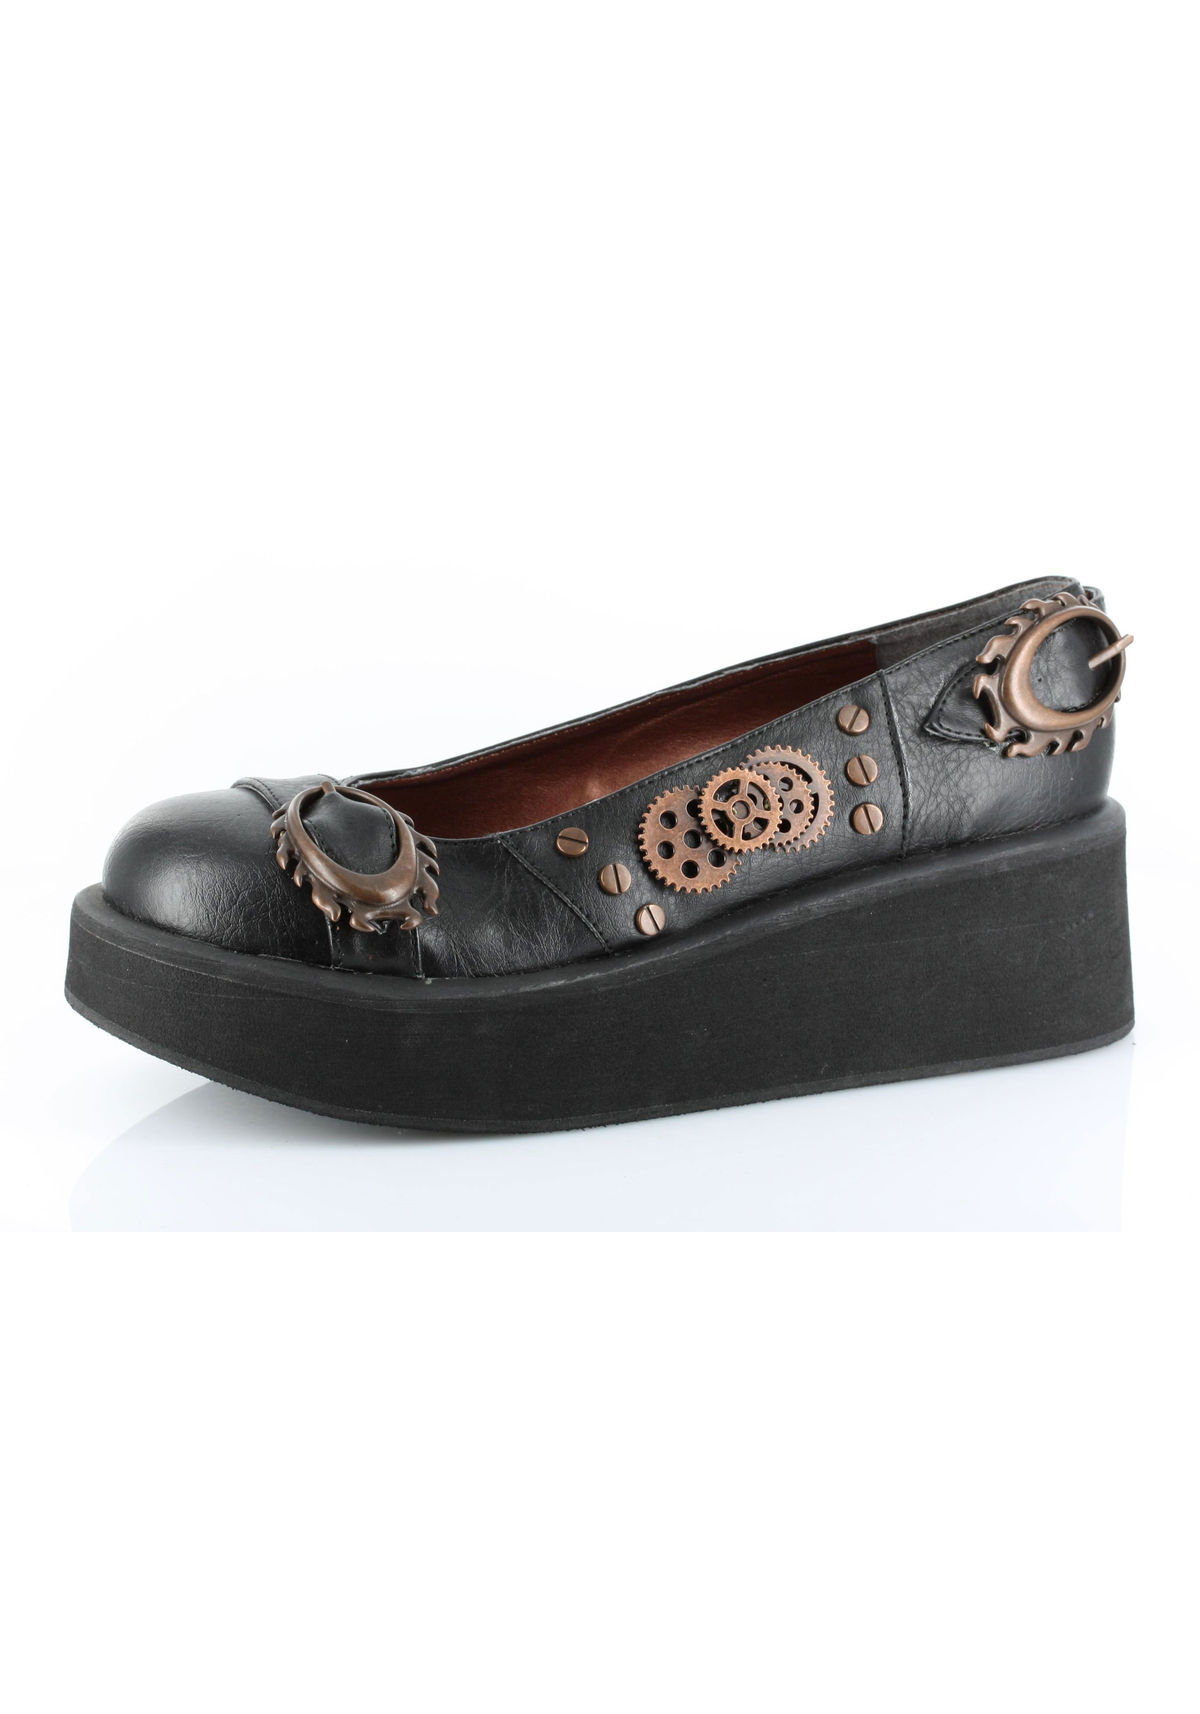 A Beautiful Steampunk Platform Shoe Shoes that are both comfortable and beautiful and eye-catching